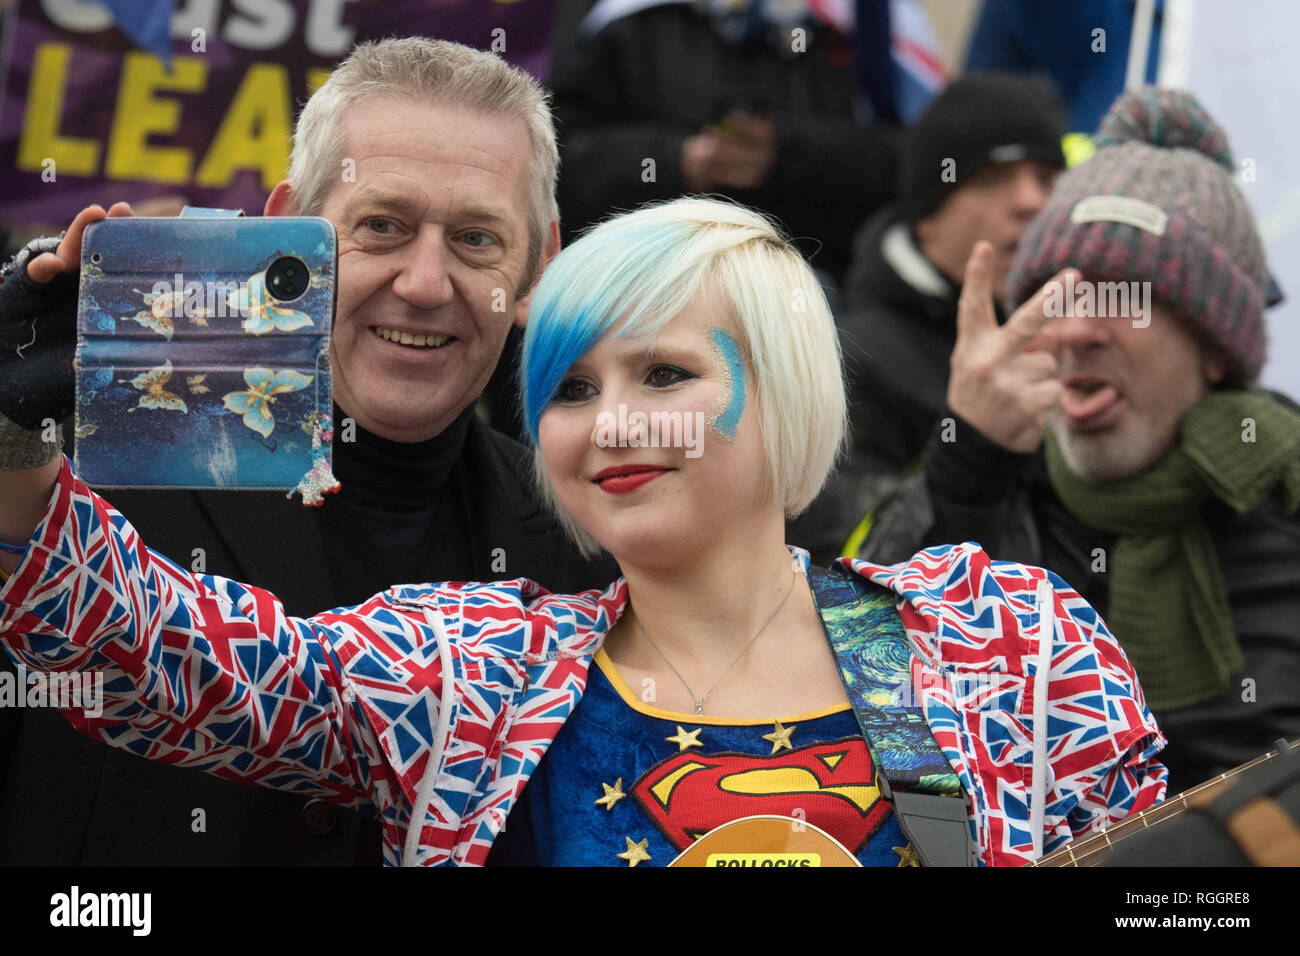 EDITORS NOTE GESTURE Anti Brexit campaigner and 'EU Supergirl' Madeleina Kay poses for a selfie outside the Houses of Parliament in London as a crucial debate on Brexit gets underway. - Stock Image